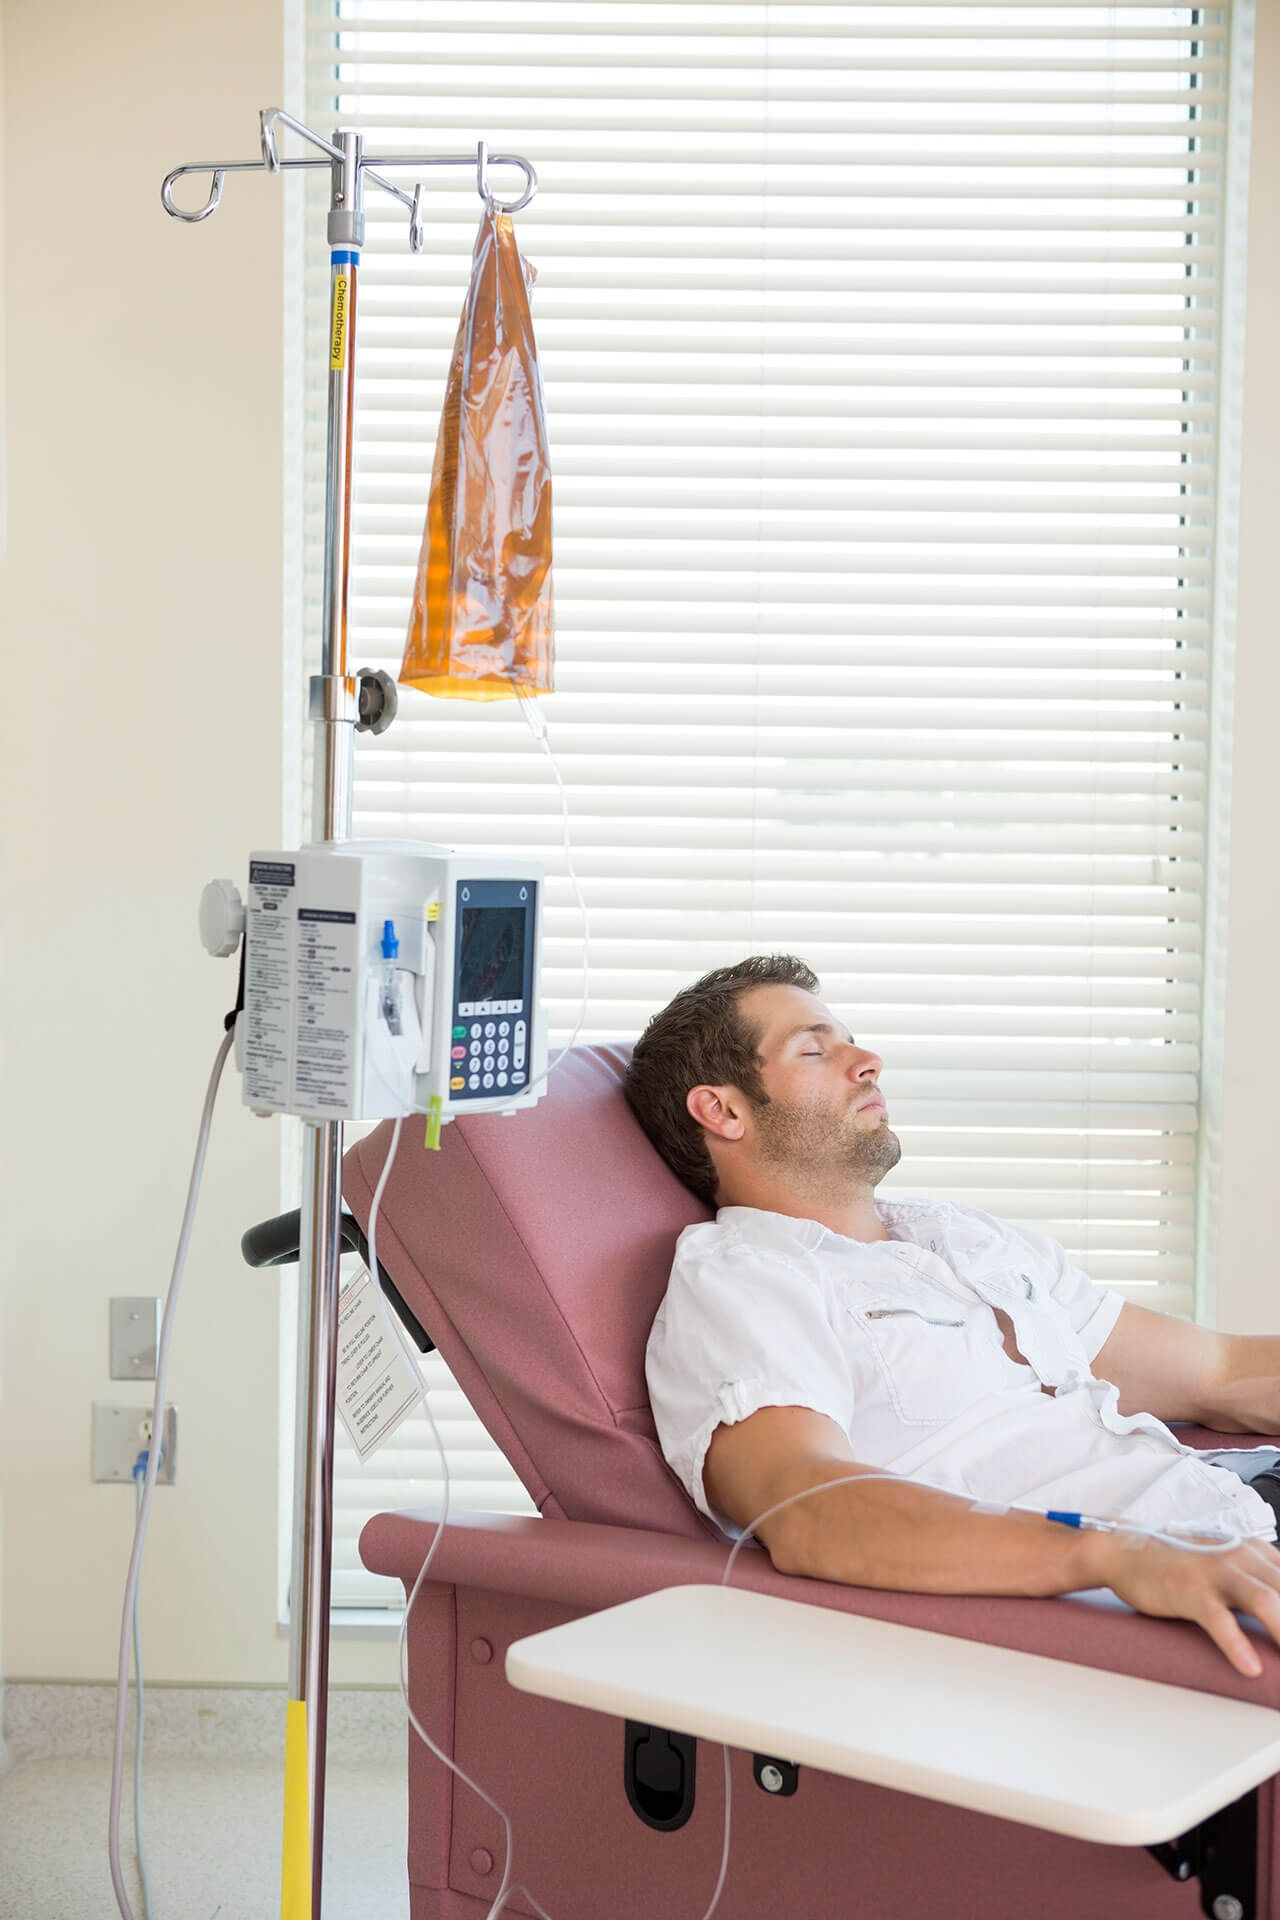 IV Drip was created to cure sicknesses due to an excessive amount of alcohol or food poisoning. IV Drip will coordinate a certified nurse to sit by your side with an IV and bring you back to life.